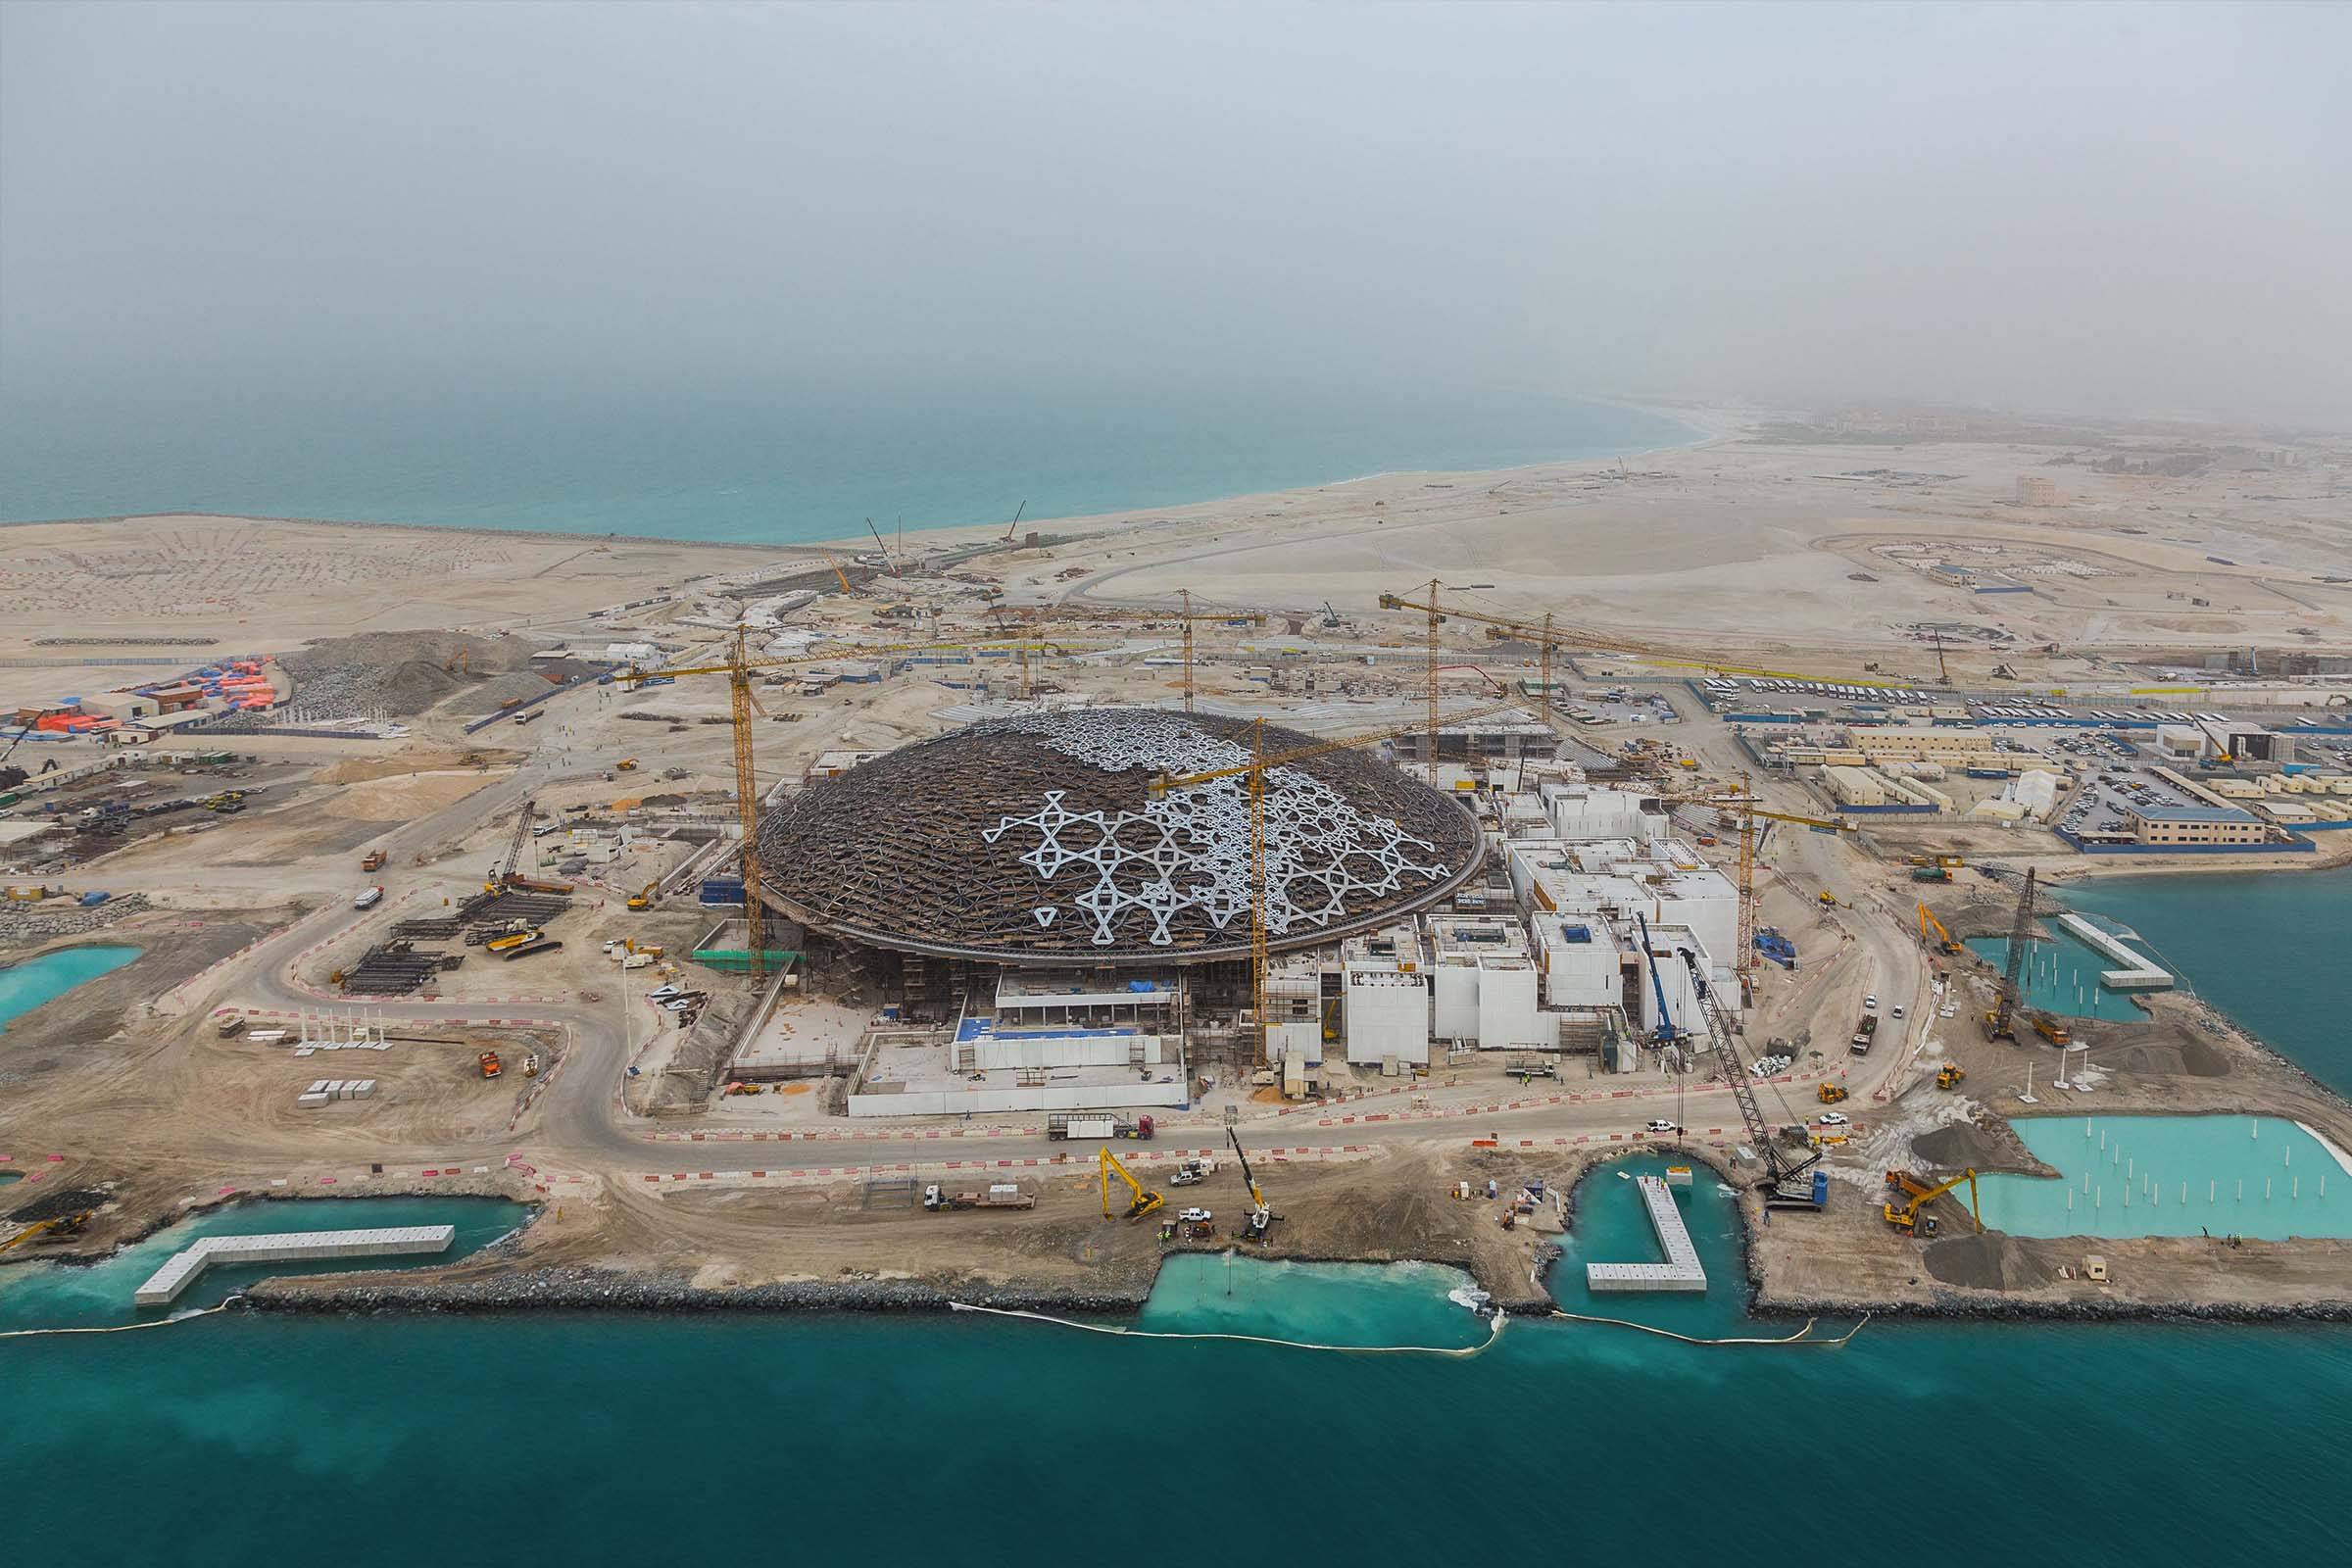 Aerial view of Louvre Abu Dhabi, construction, Architect Jean Nouvel